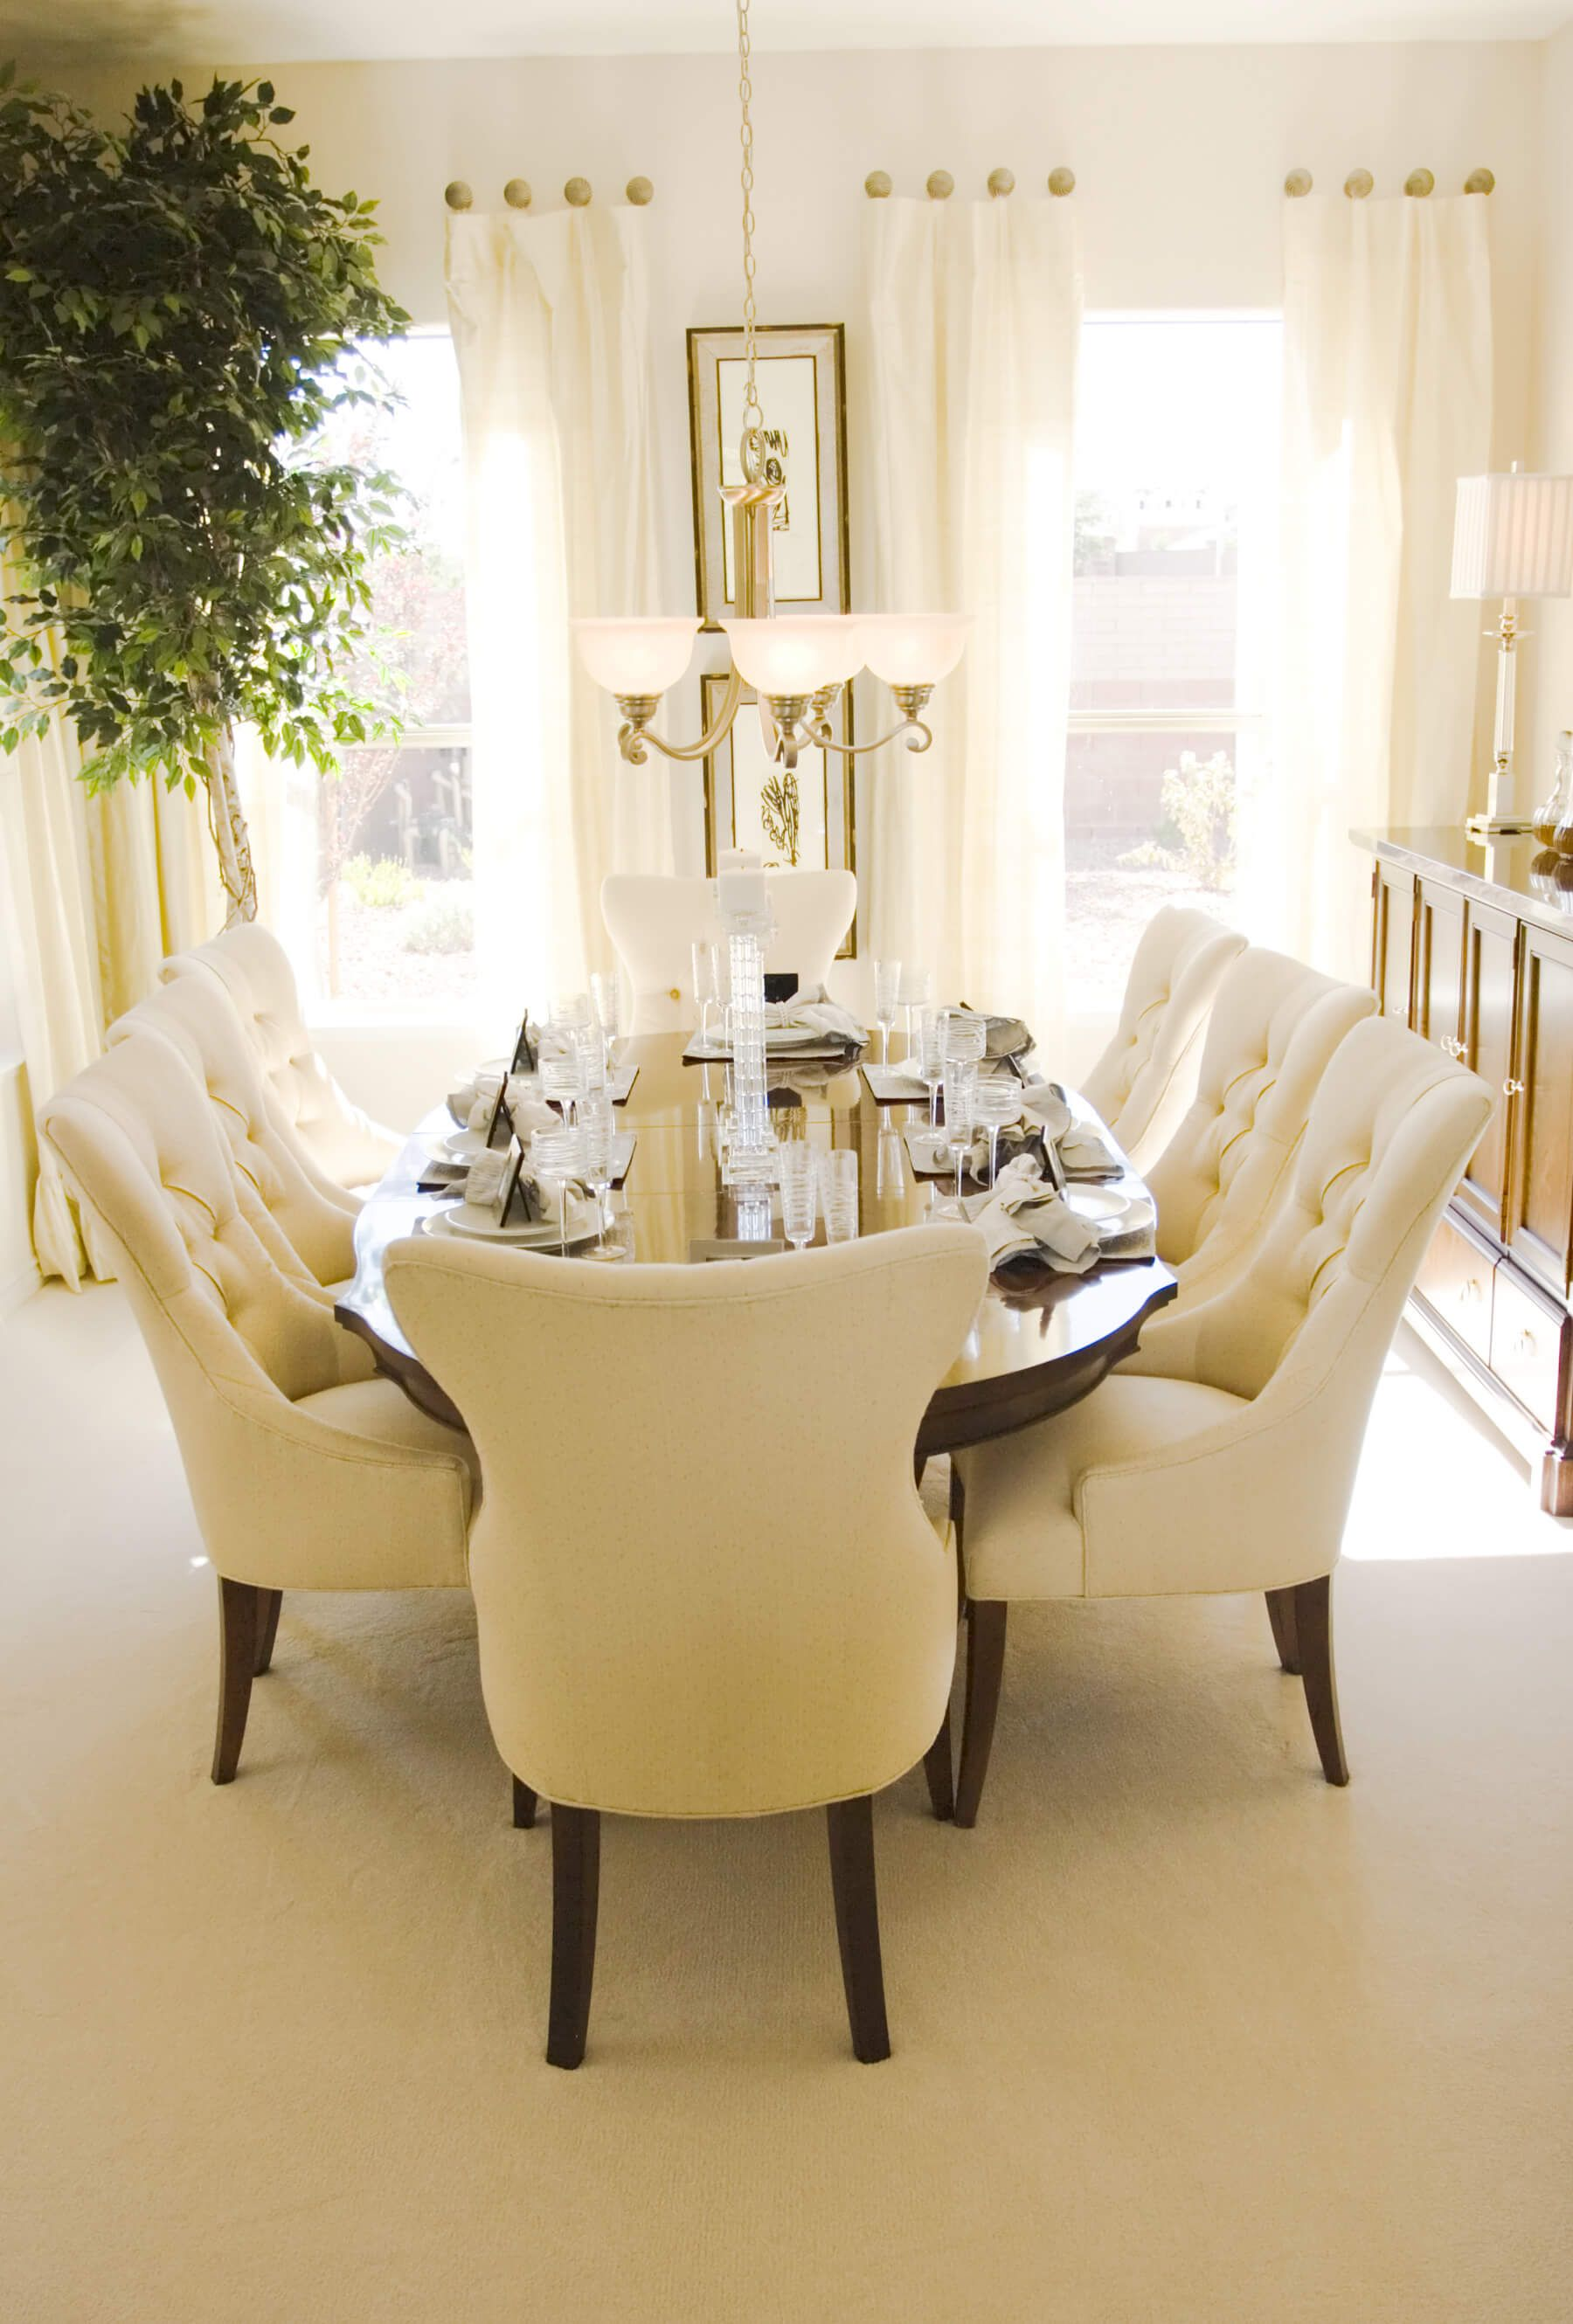 Bright Sunny Dining Room With Oval Wood Table And Eight Plush Cream Colored Chairs